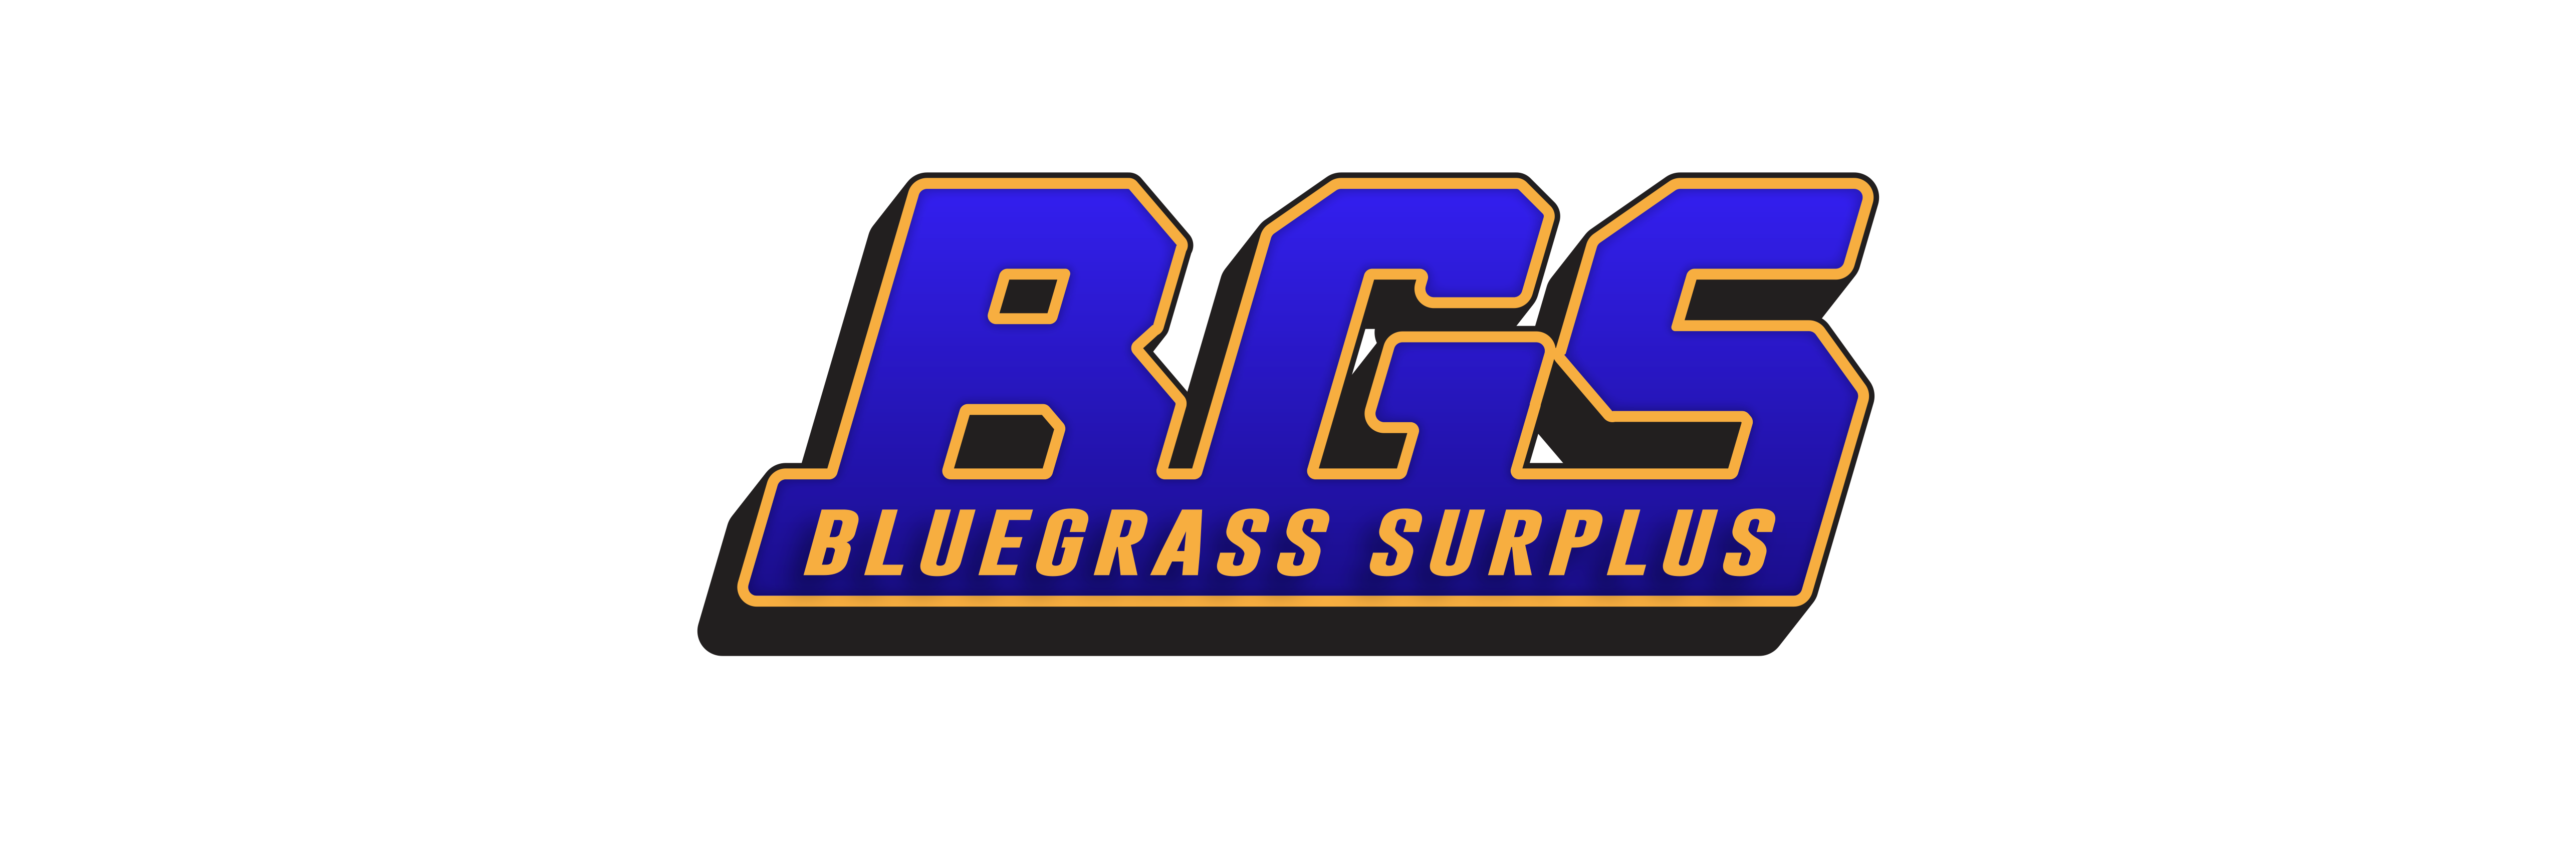 Bluegrass Surplus